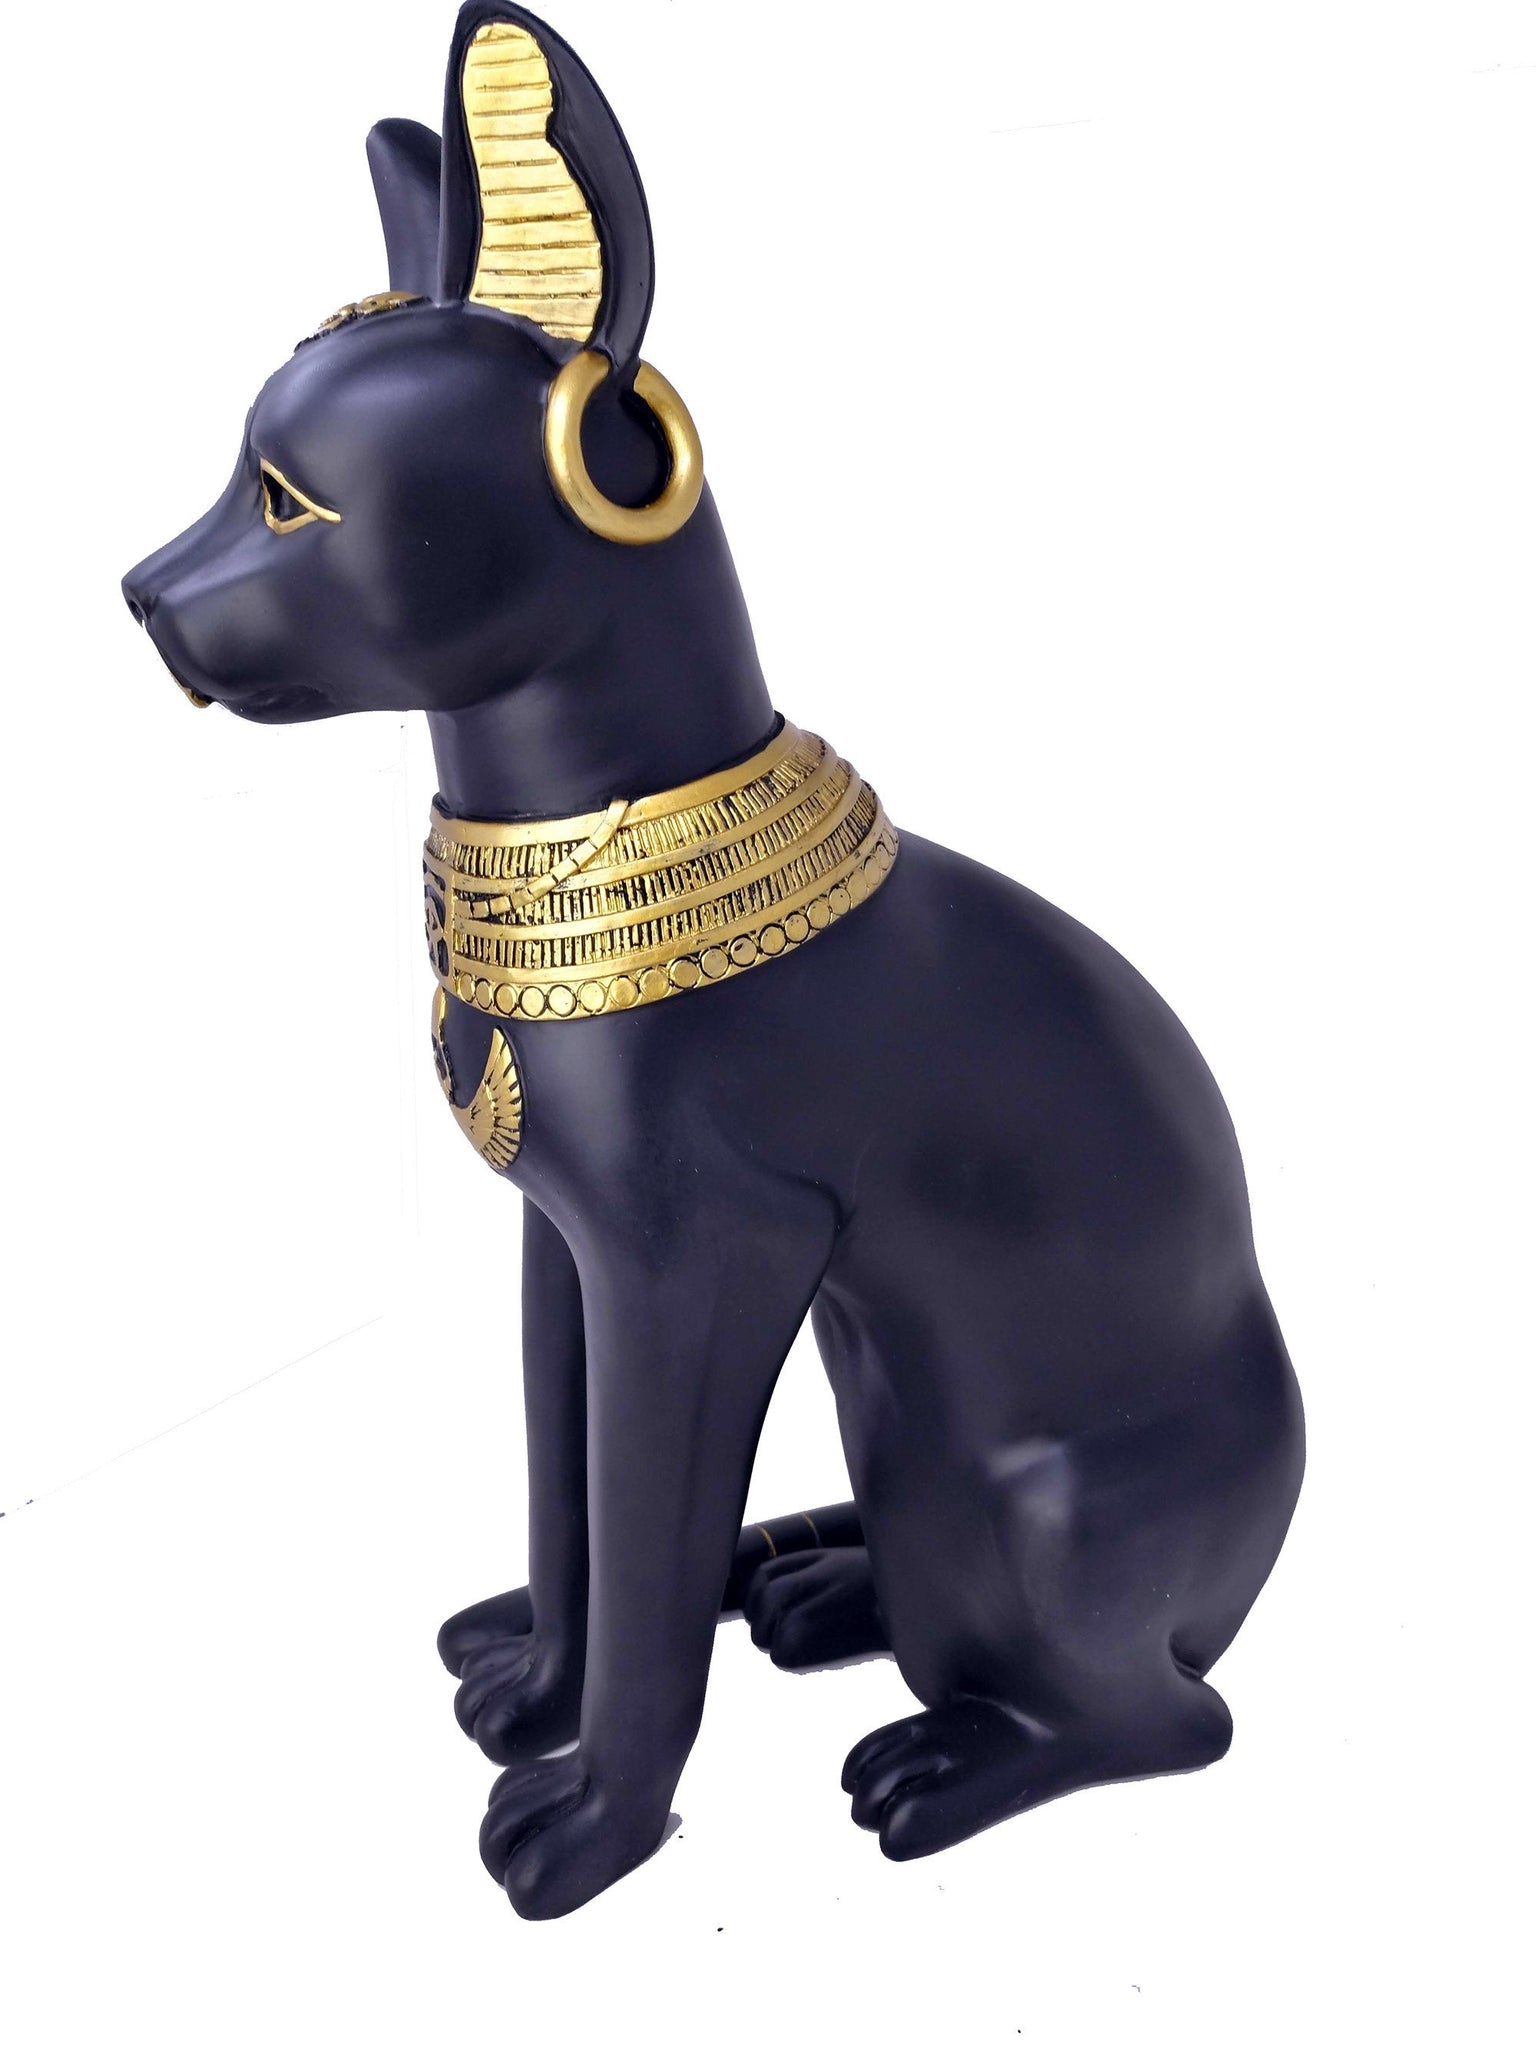 Large Hand-Painted Bastet Statue - Ancient Egyptian Goddess Bastet With Earrings & Wadjet Amulet - 50cm / 20 inches tall